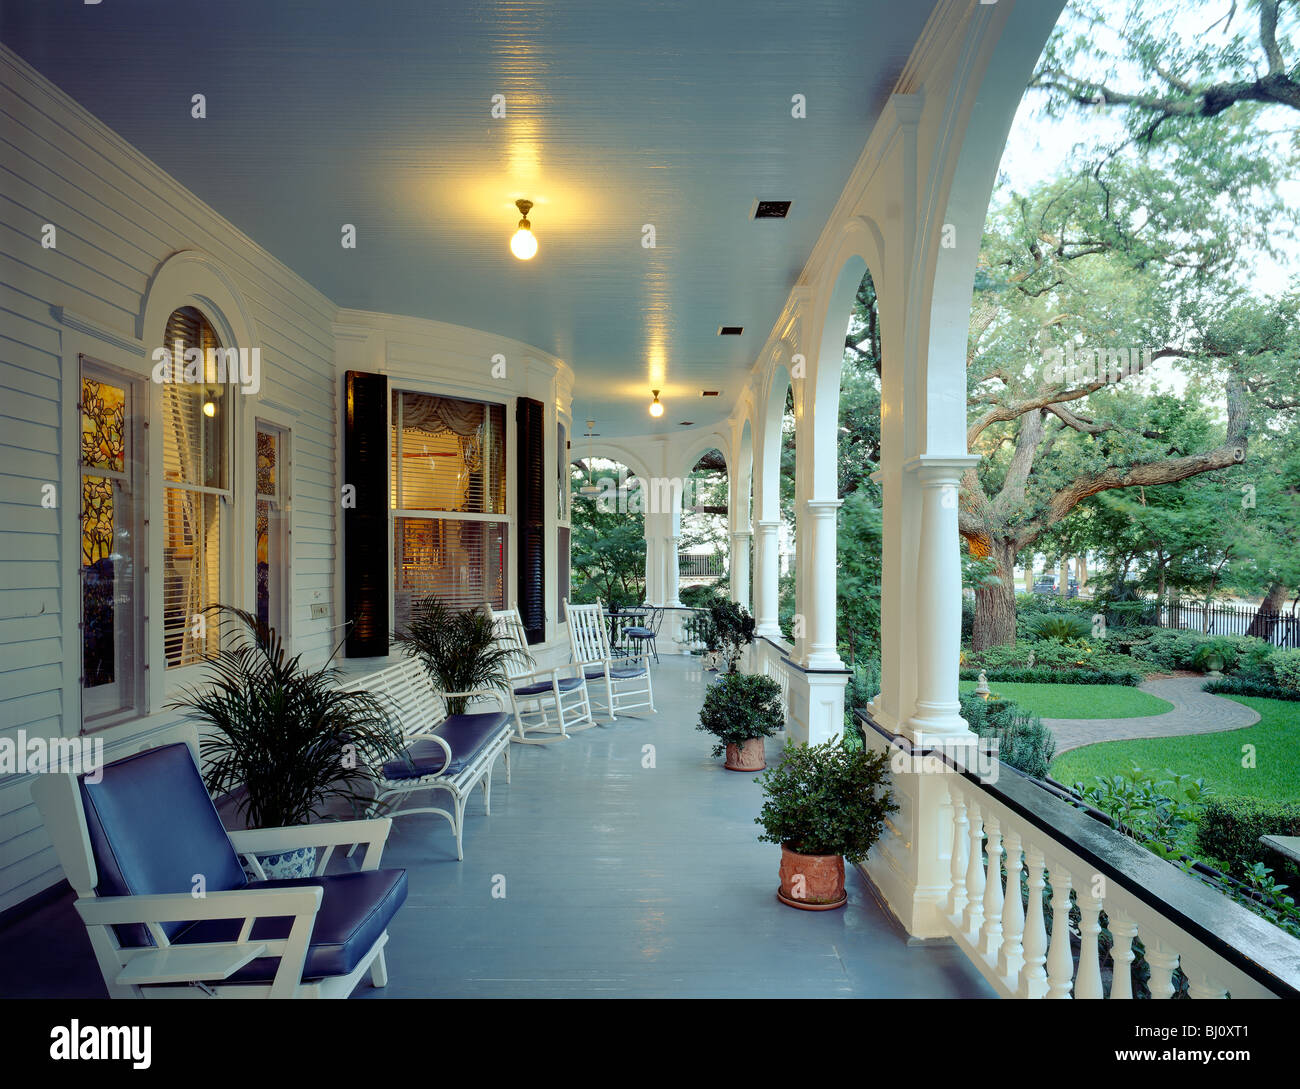 exterior porch view of two meeting street inn c1892 bed stock exterior porch view of two meeting street inn c1892 bed breakfast a queen anne mansion style home in charleston sc usa